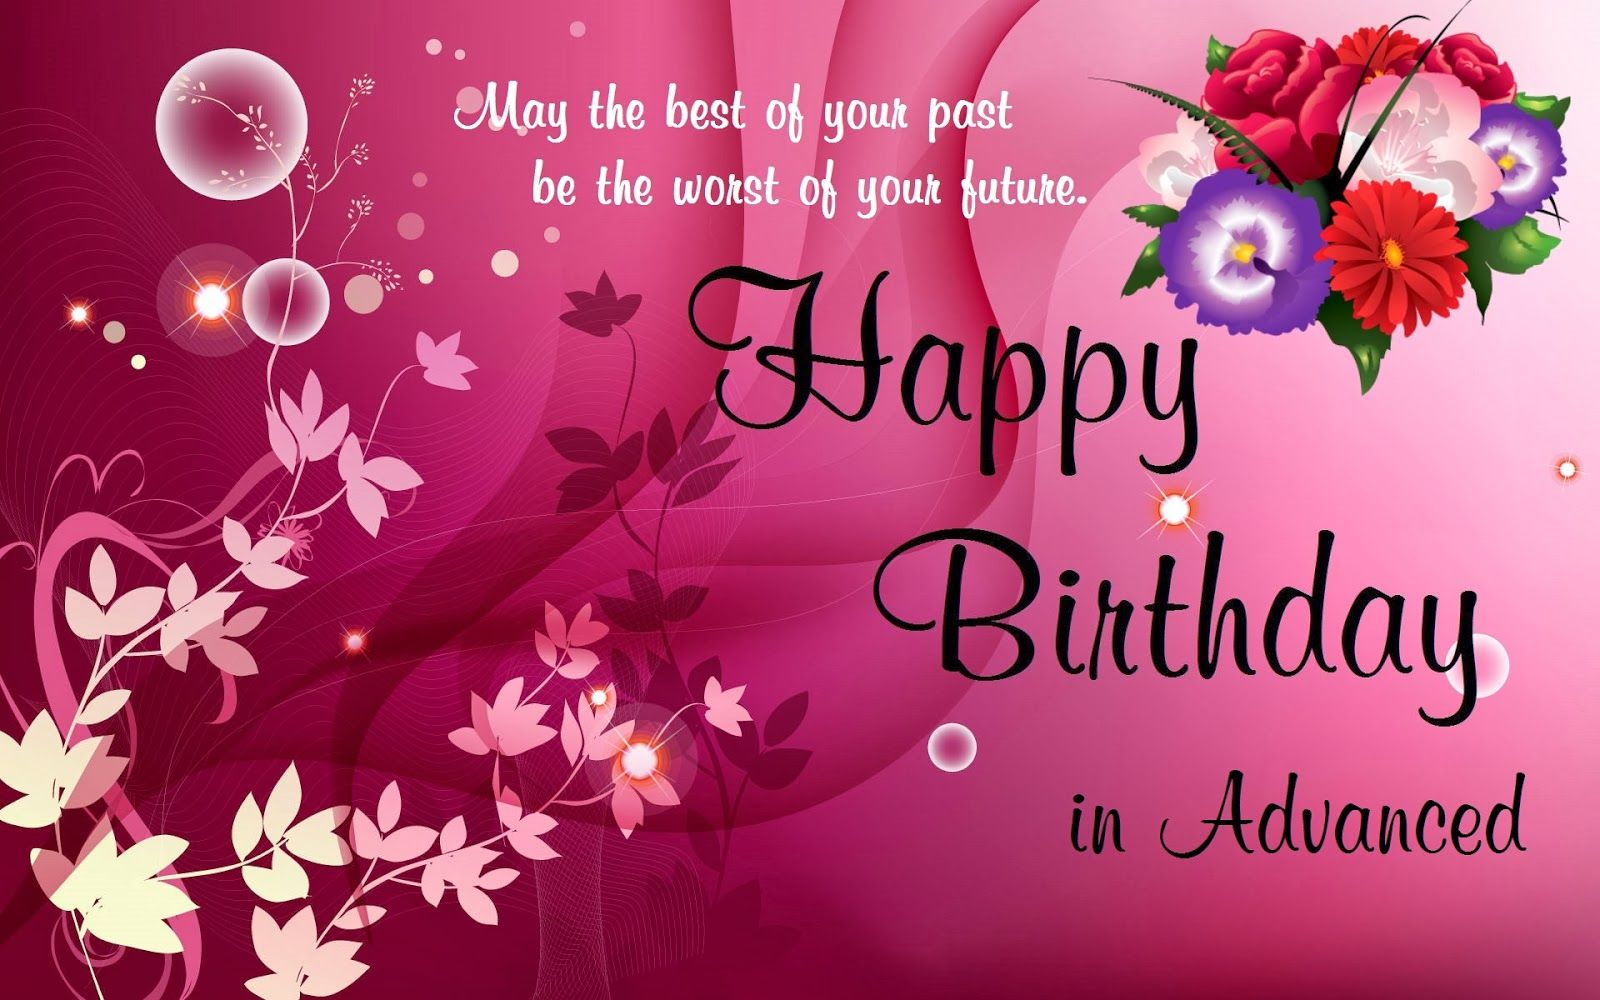 Best Birthday Wishes Quotes ~ Best happy birthday wishes free large images ideas for the